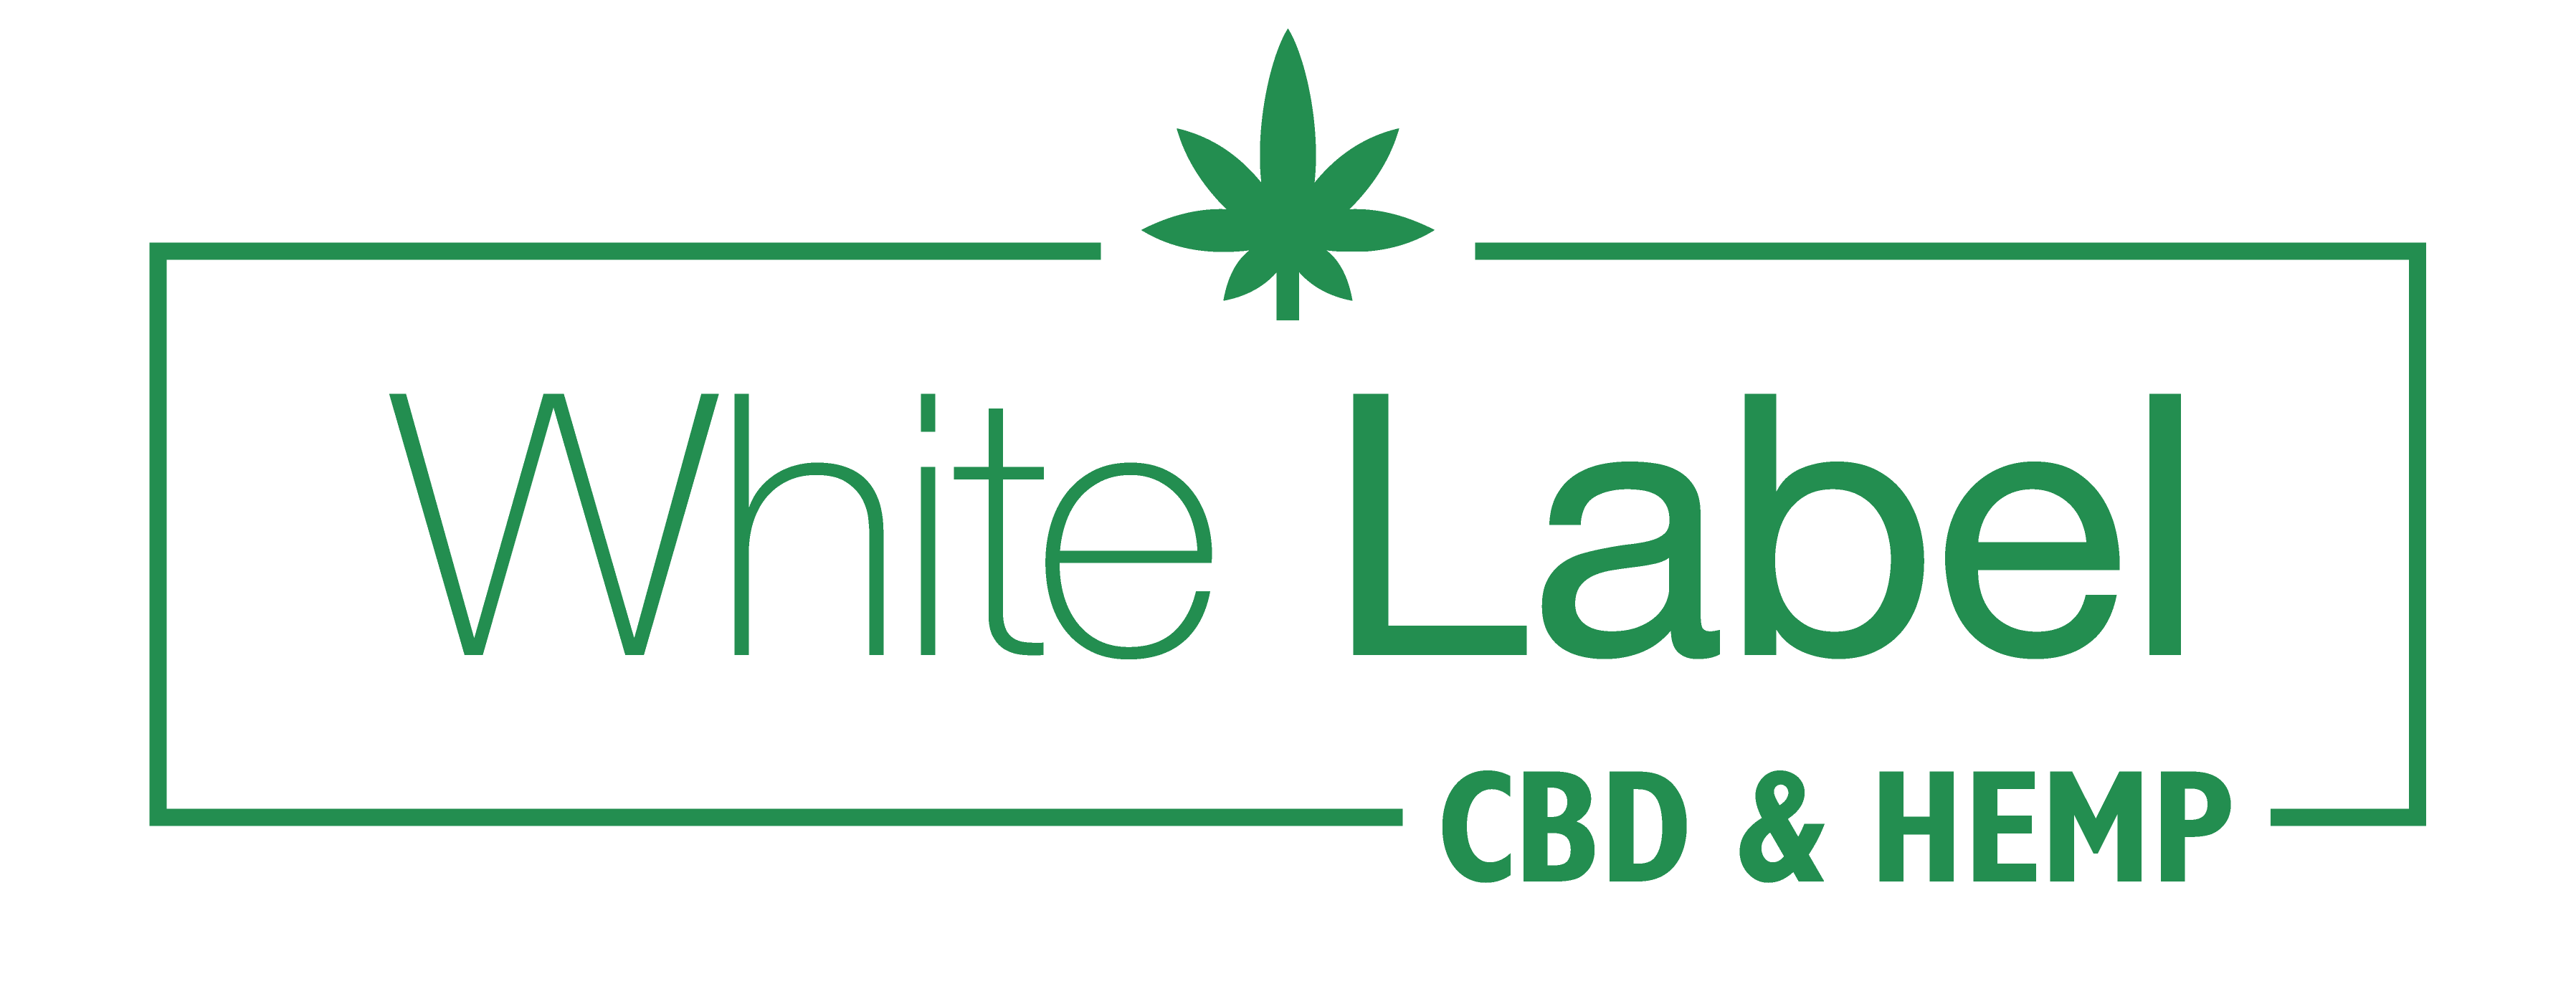 White Label CBD & Hemp